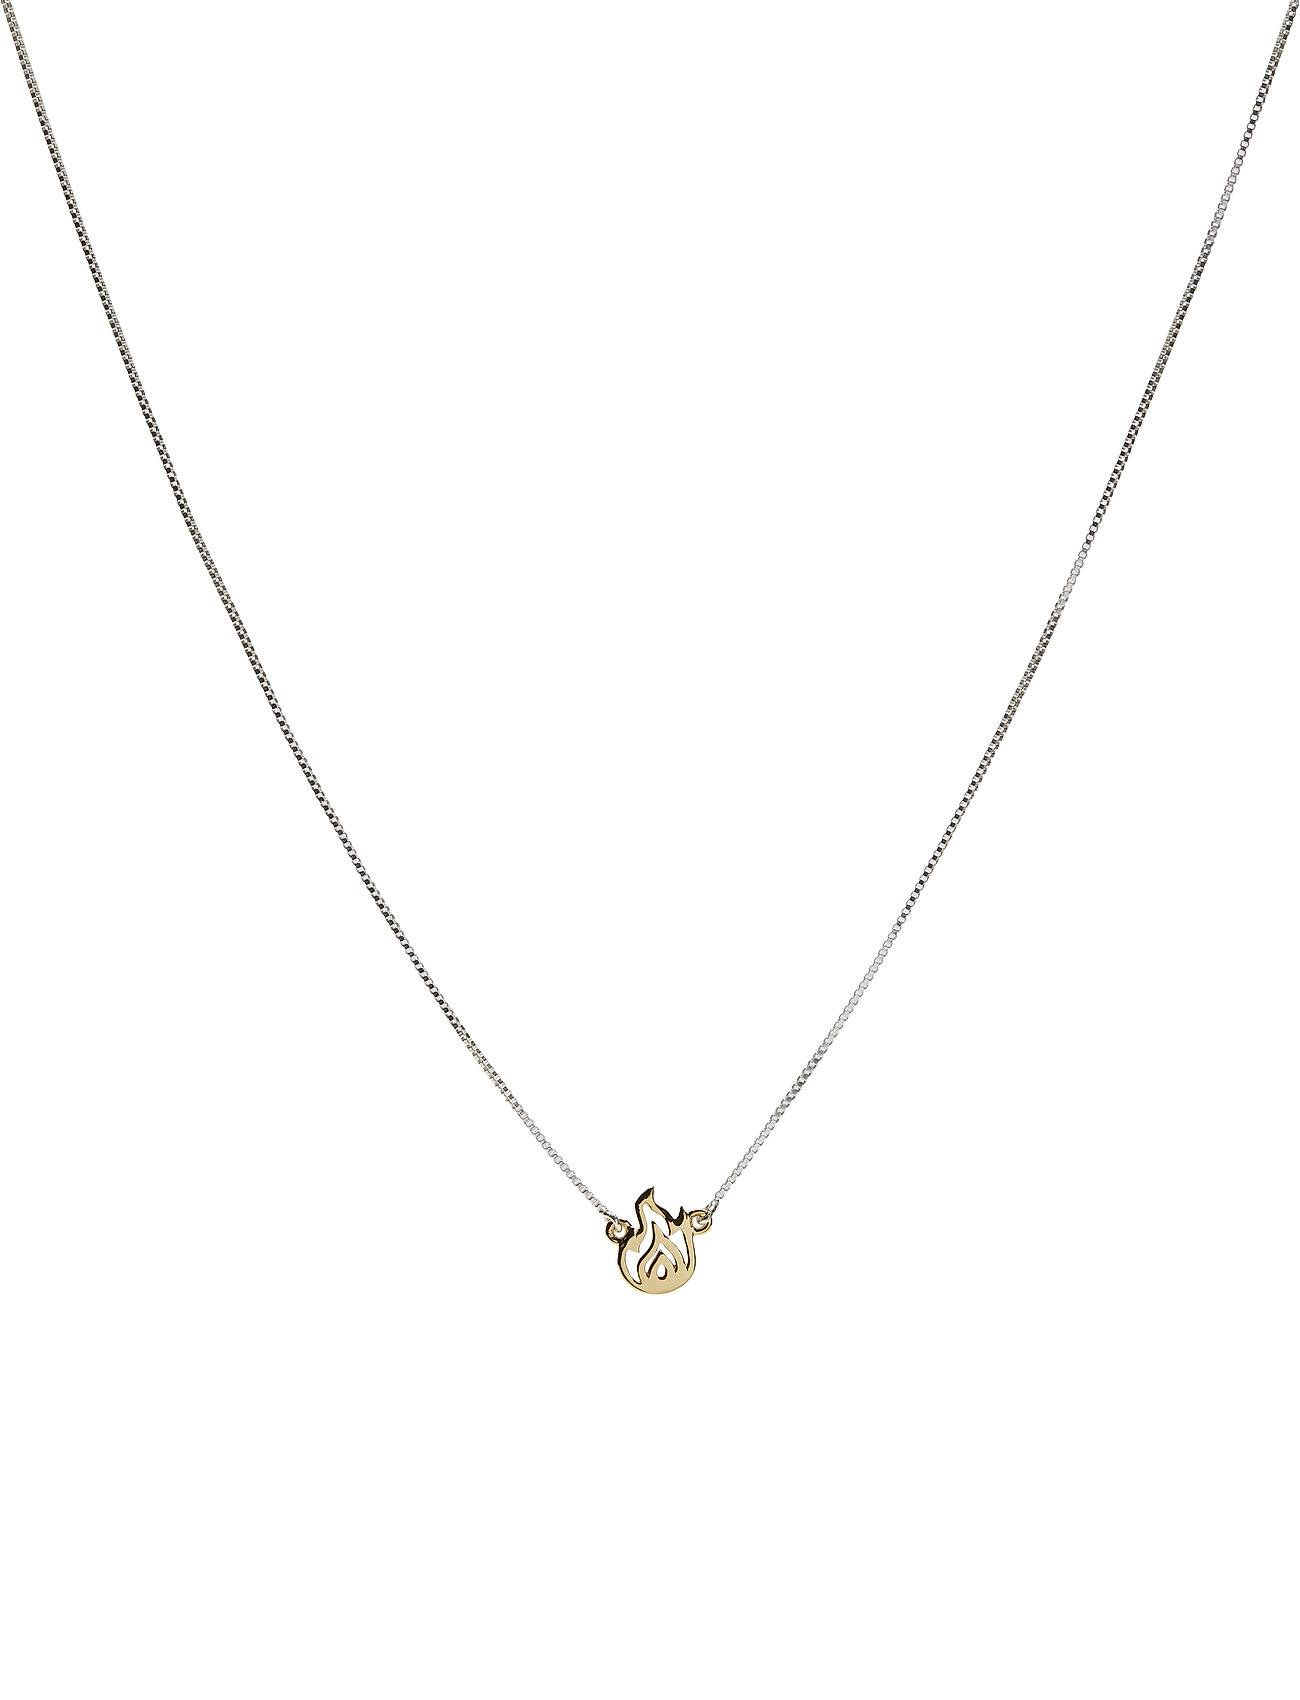 Syster P Snap Necklace Fire Accessories Jewellery Necklaces Dainty Necklaces Kulta Syster P